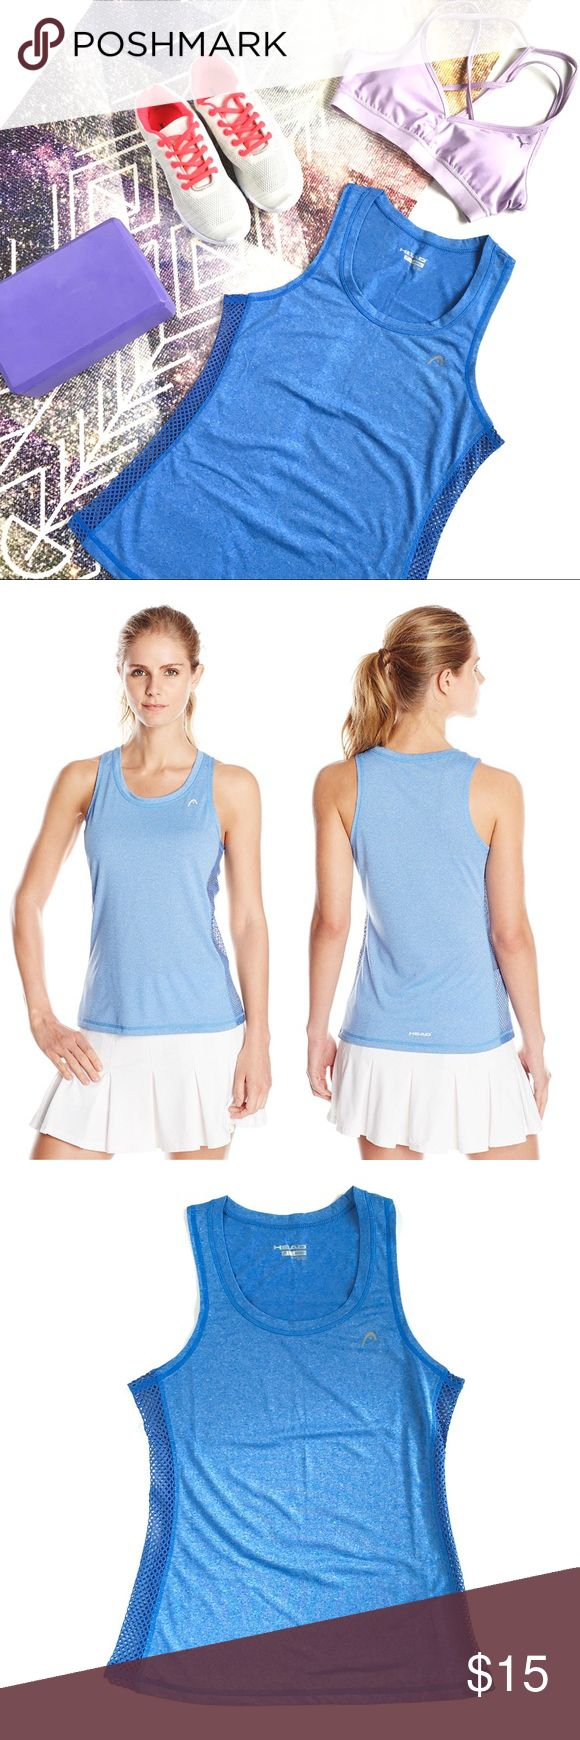 "HEAD Mesh Winged Active Tank in Heathered Sky, S Basics don't have to be basic with this awesome athletic tank top from HEAD, featuring a heathered skyblue body with meshed-out side panels for supreme breathability and air transfer. Scoop neck, sweat-wicking material. Size S, fits true to size, measures approx 15.5"" across chest, 24.5"" long. Brand new, never worn, NWOT. Please feel free to make an offer, bundle for greater discount, or ask any questions! :) HEAD Tops Tank Tops"